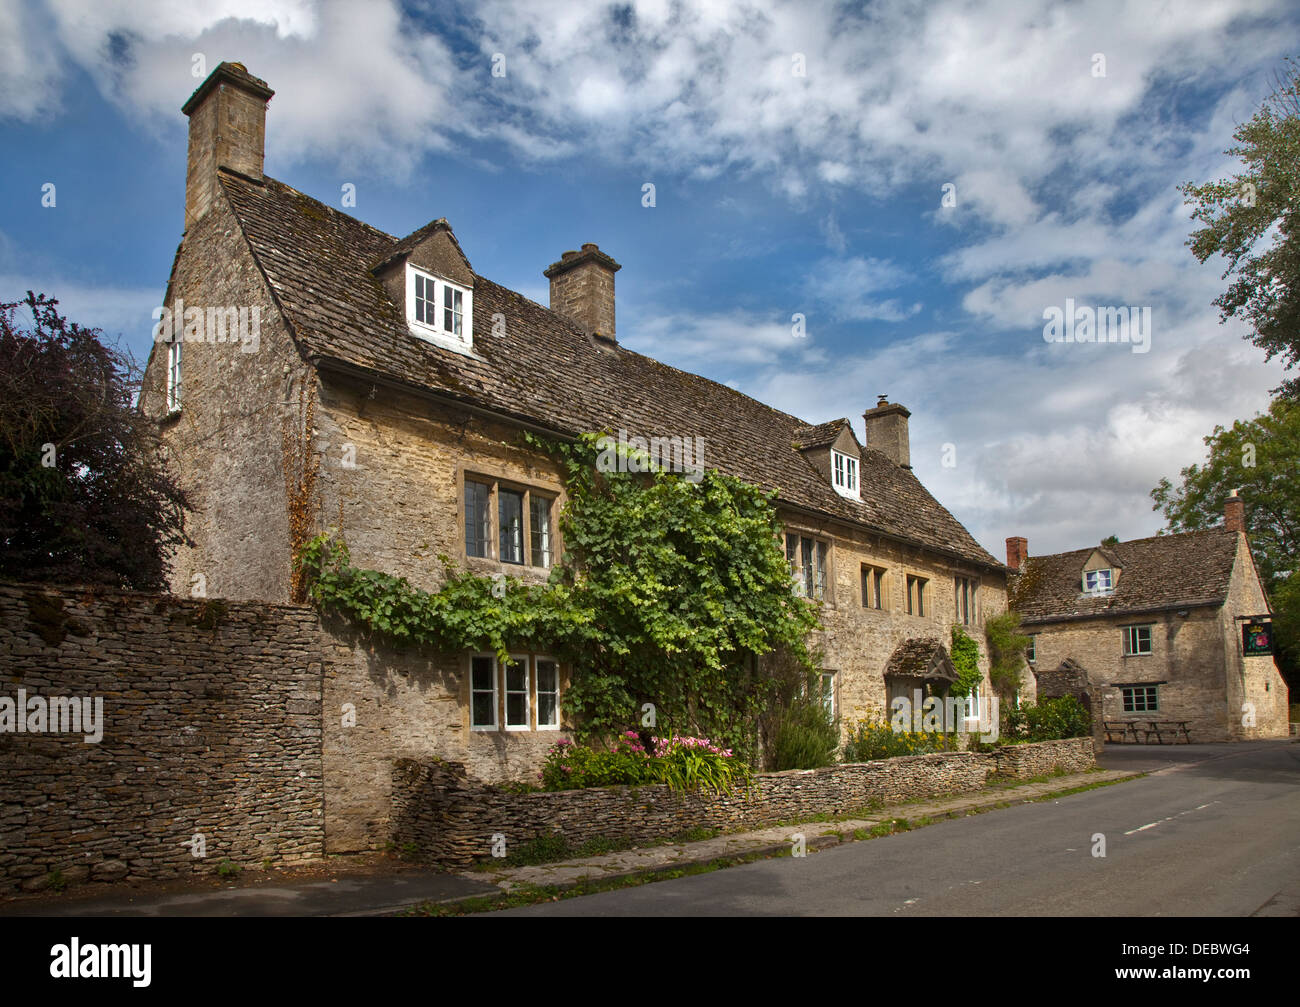 Cottages in Shilton, Oxfordshire, England - Stock Image